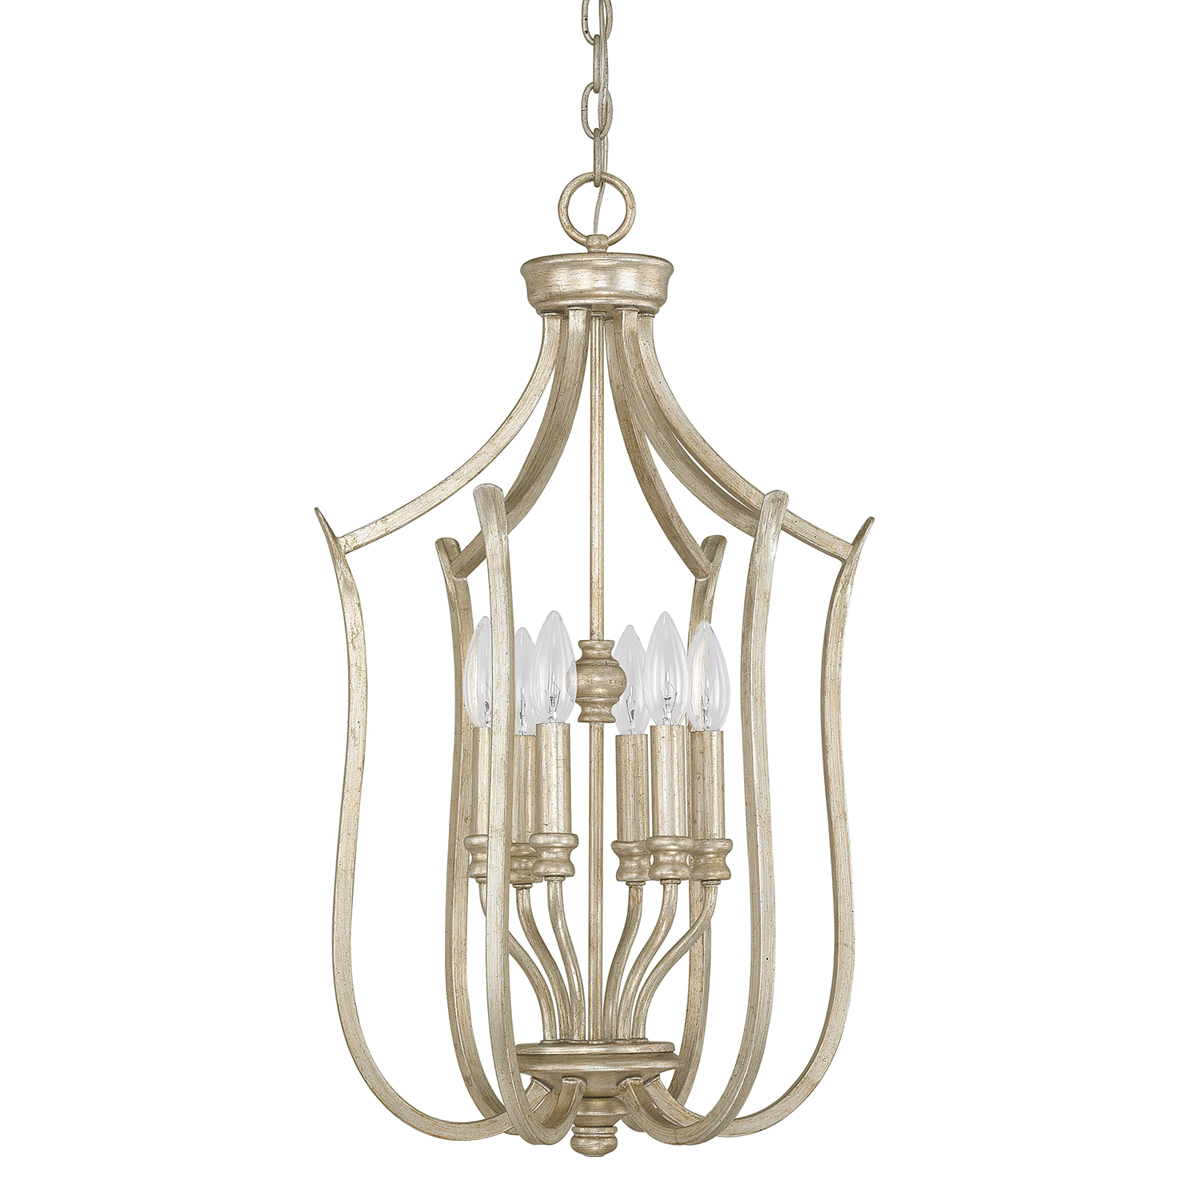 Foyer Pendant Lighting : Capital lighting bailey light foyer fixture